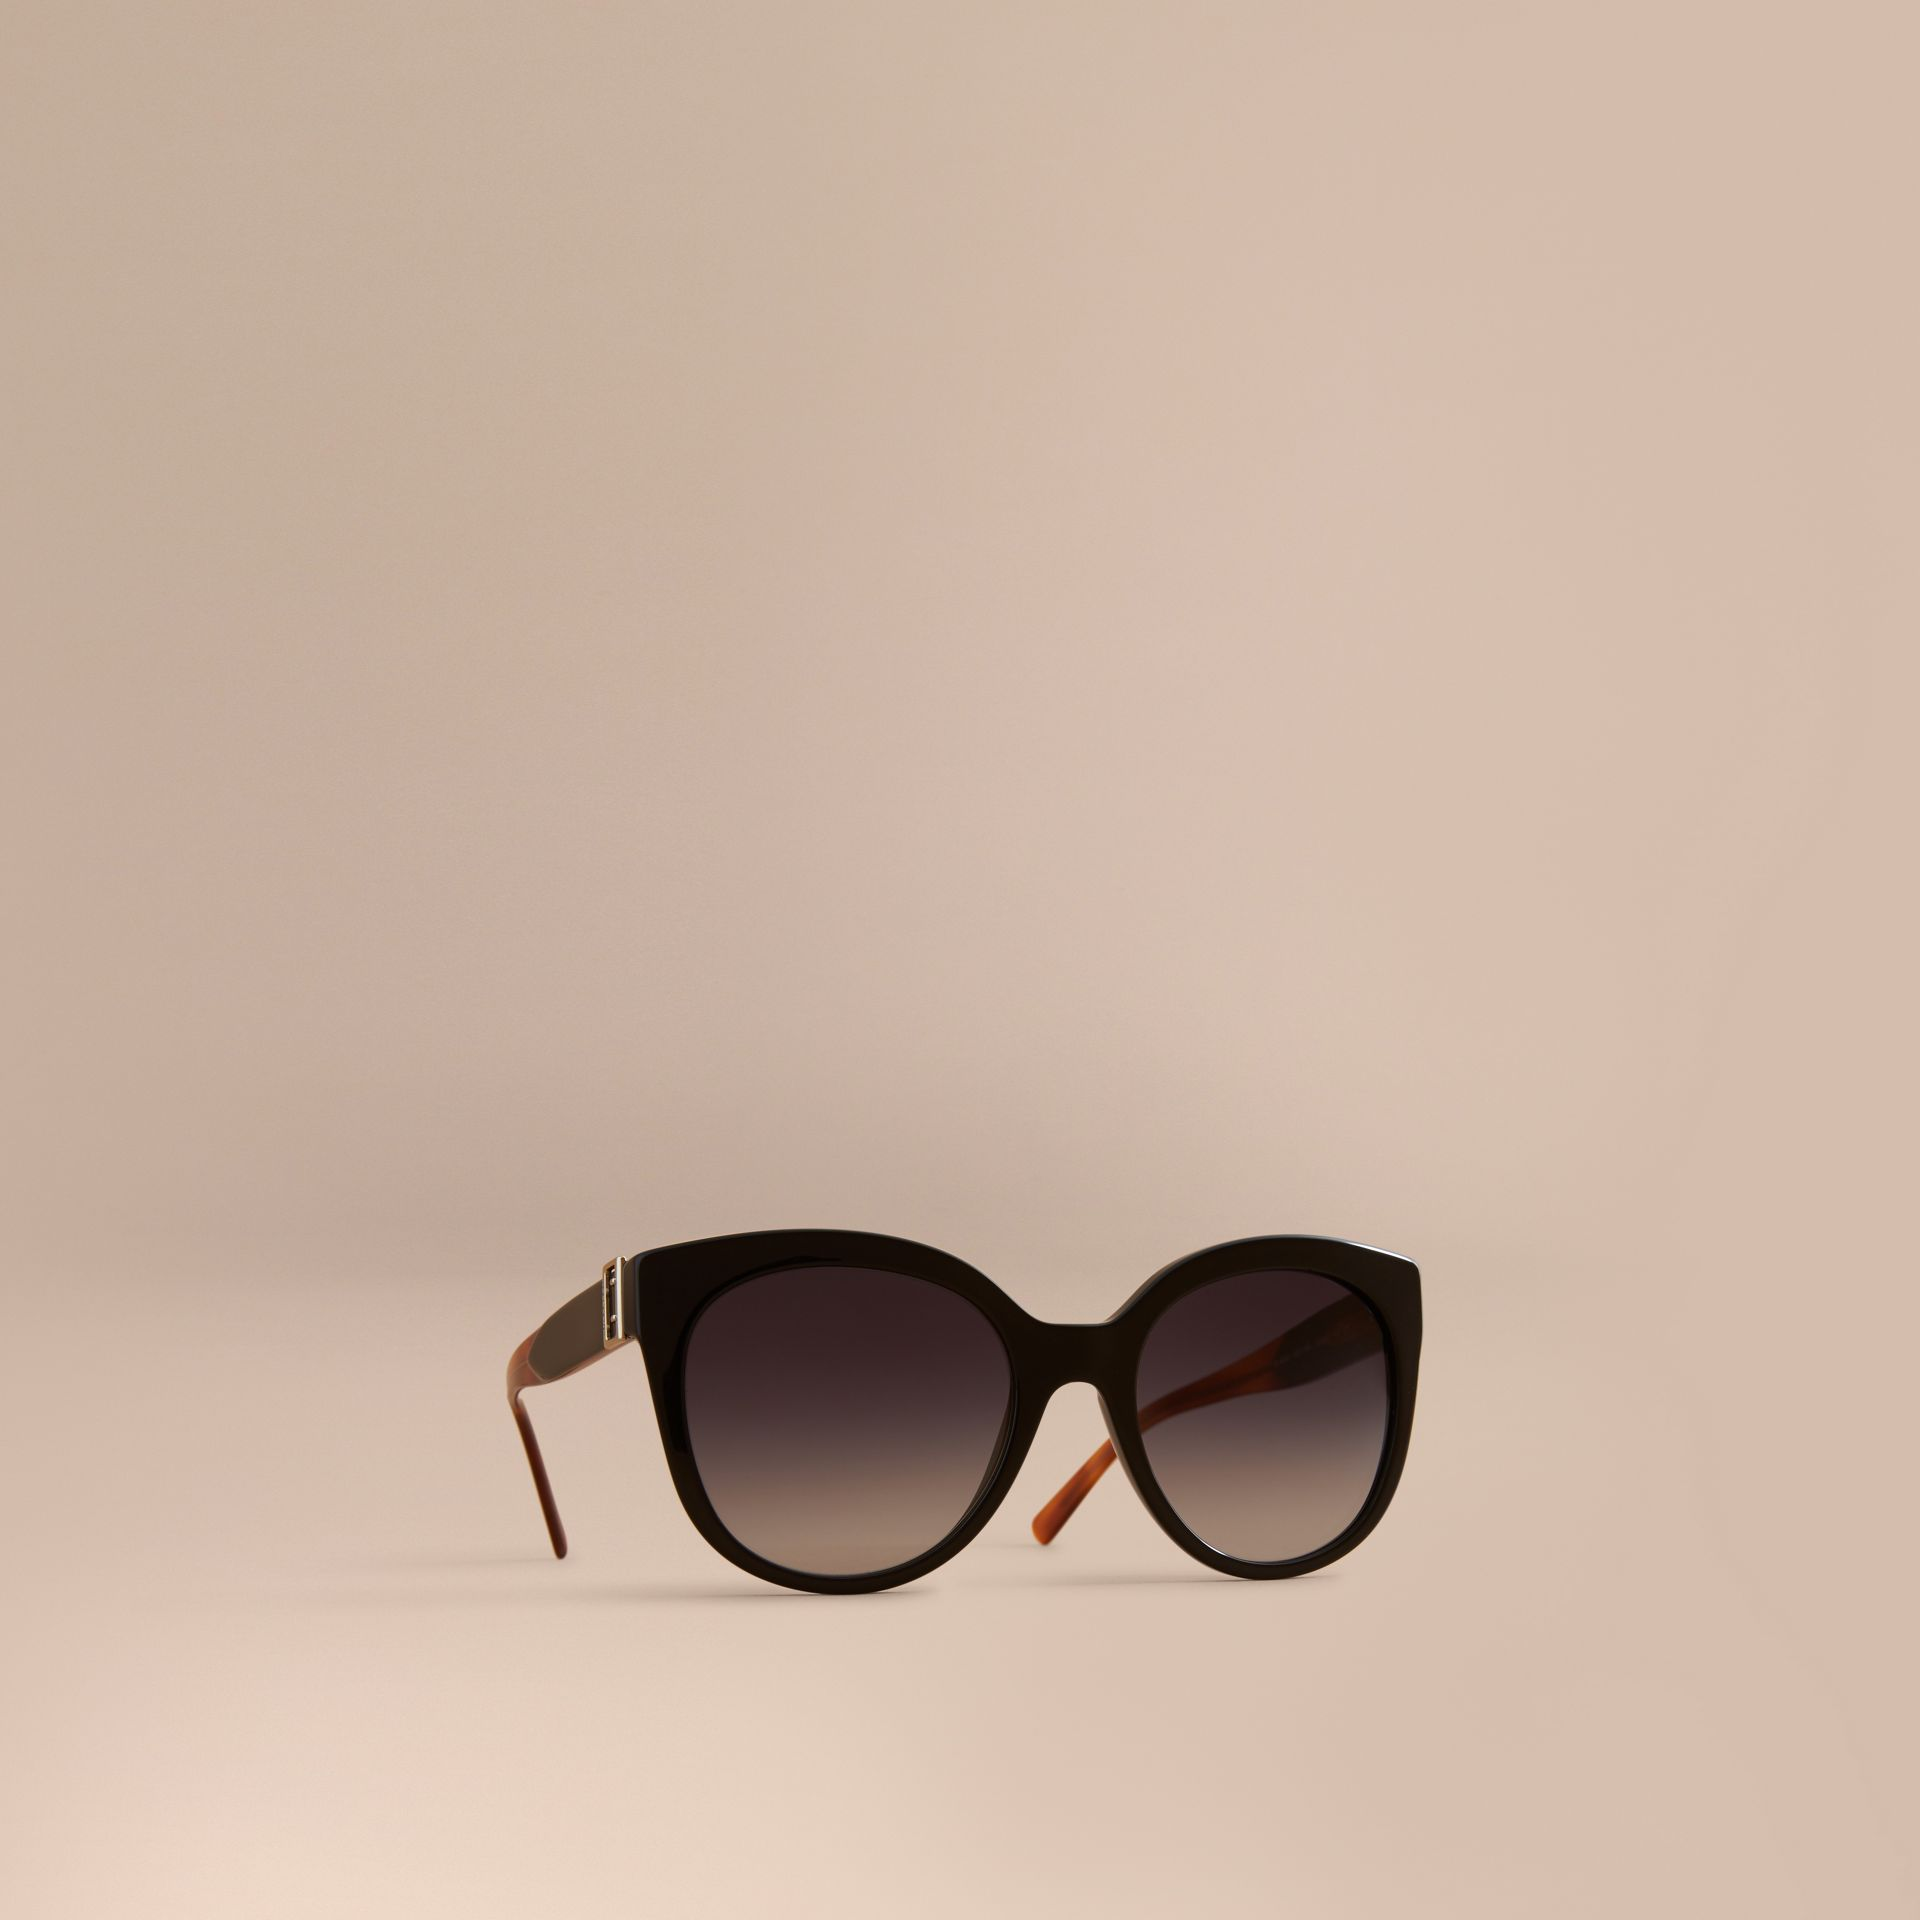 Buckle Detail Cat-eye Frame Sunglasses in Black - Women | Burberry Canada - gallery image 1